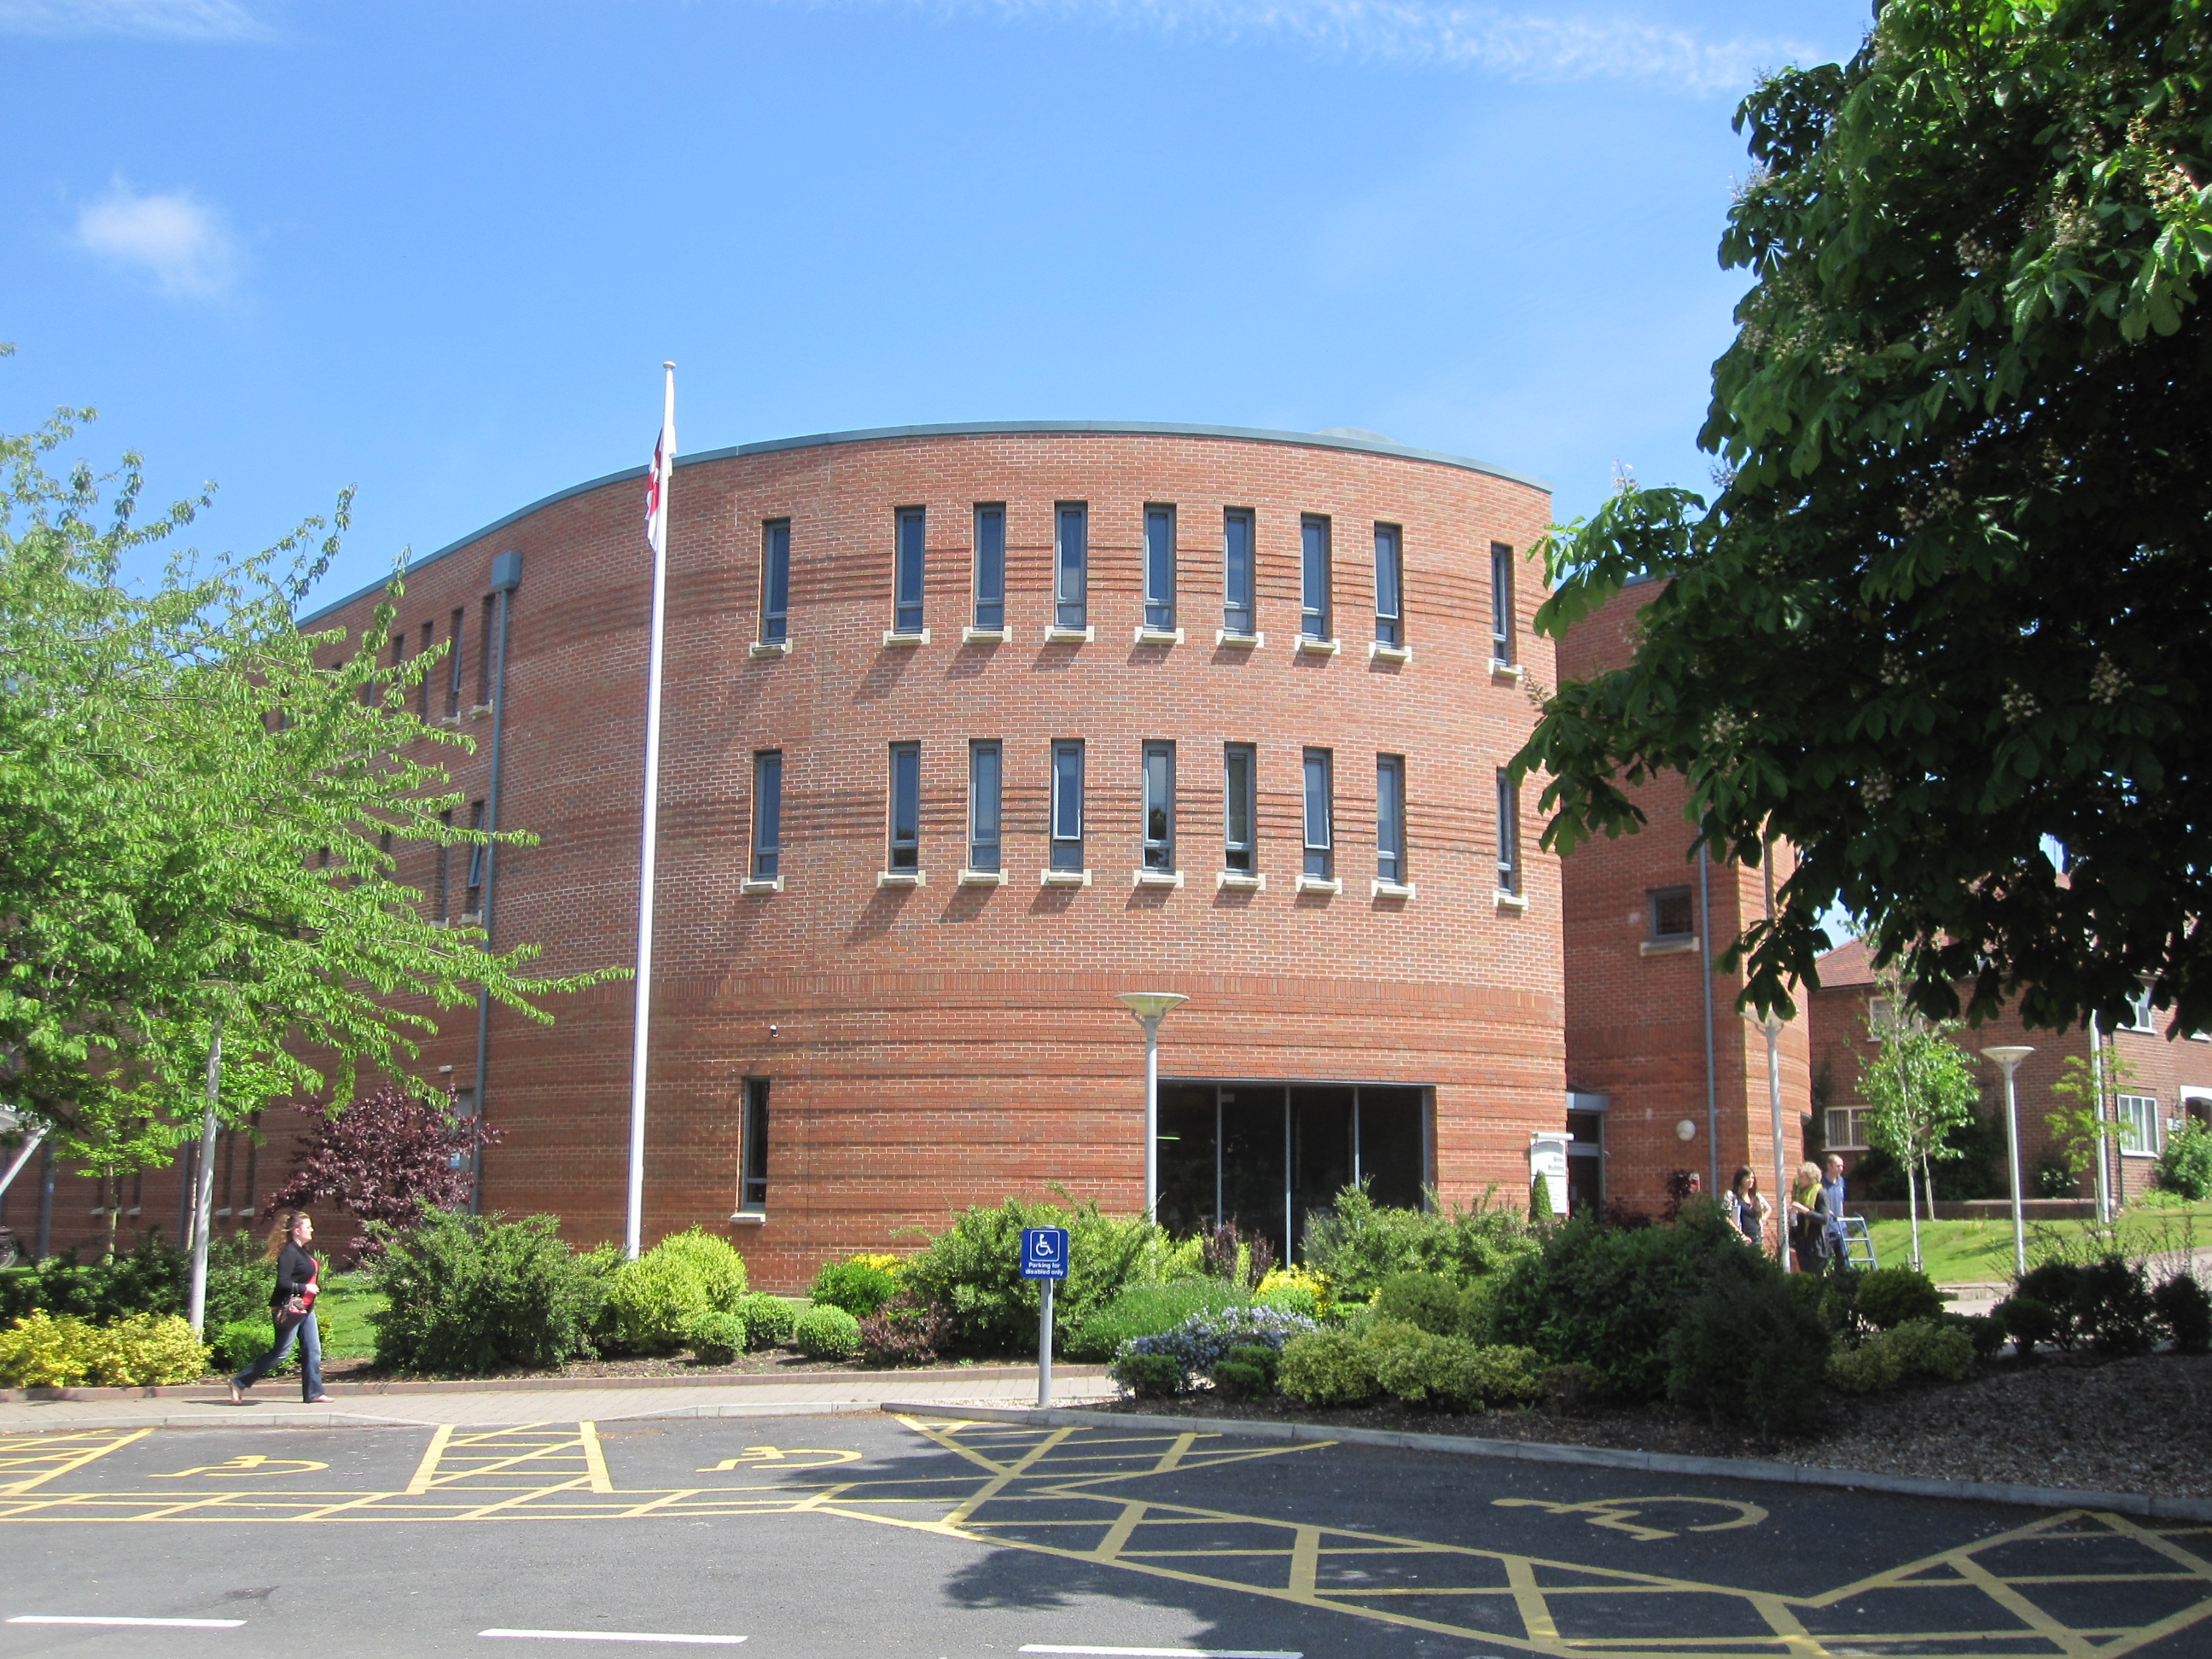 University of Chester – Parkgate